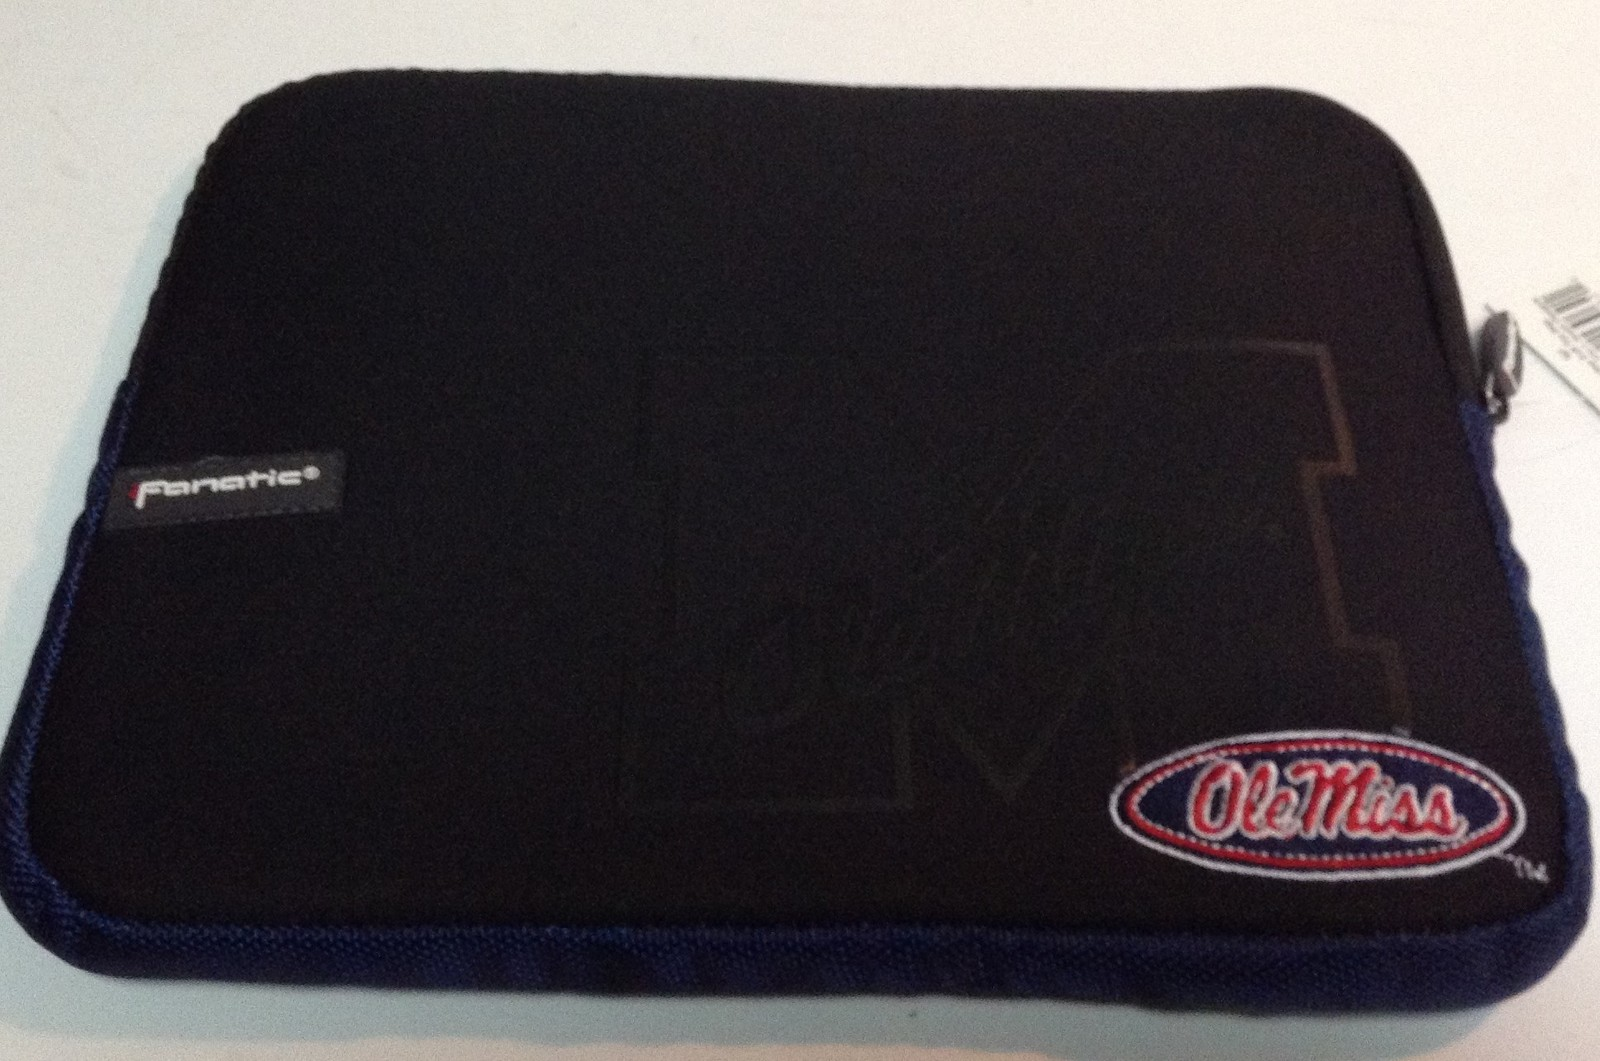 Mississippi University Ole Miss Tablet Ipad Laptop Protection Case by Fanatic NW